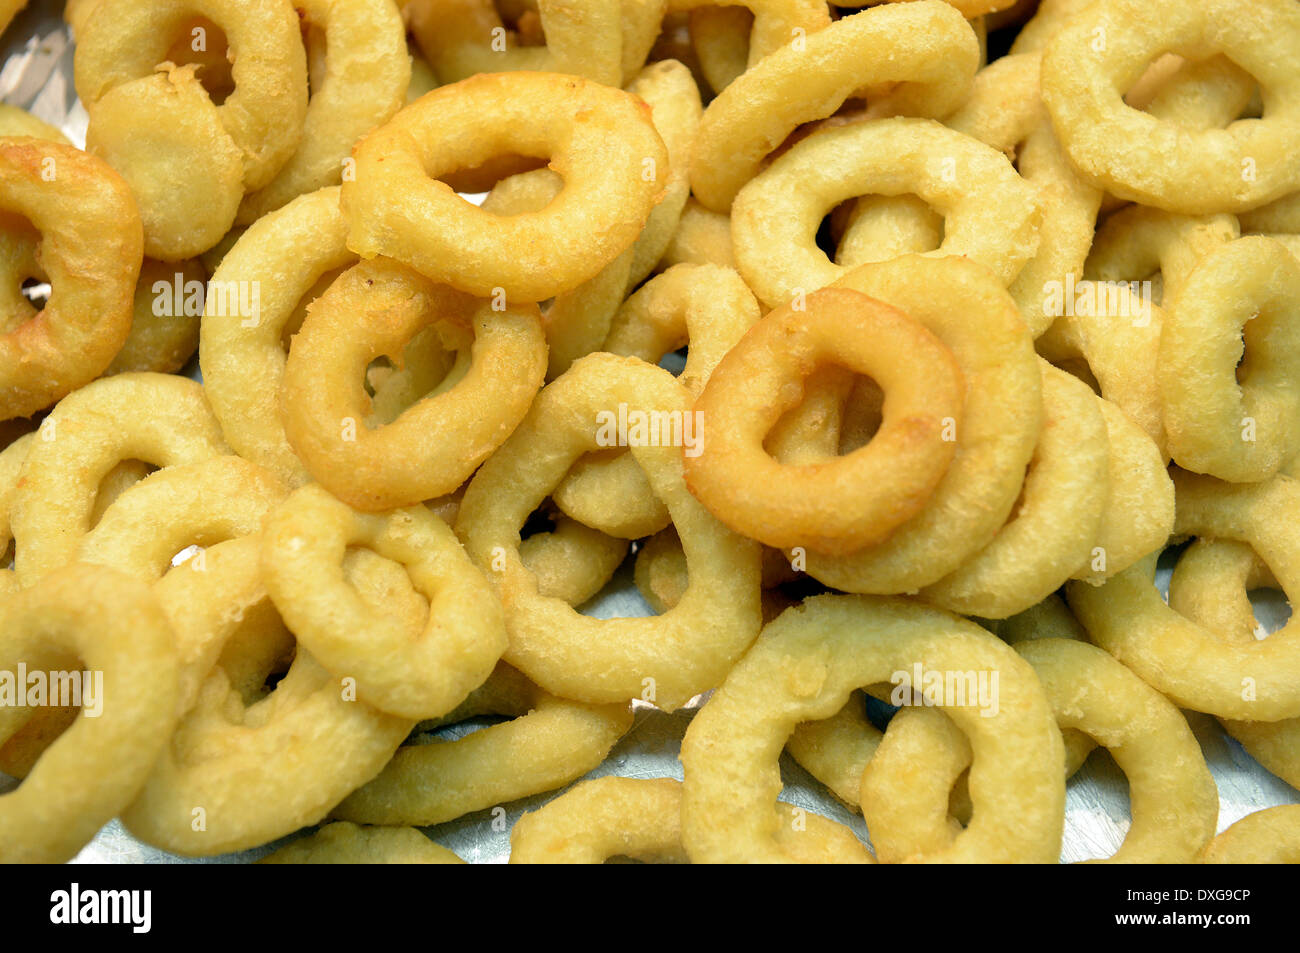 Download image deep fried squid rings pc android iphone and ipad